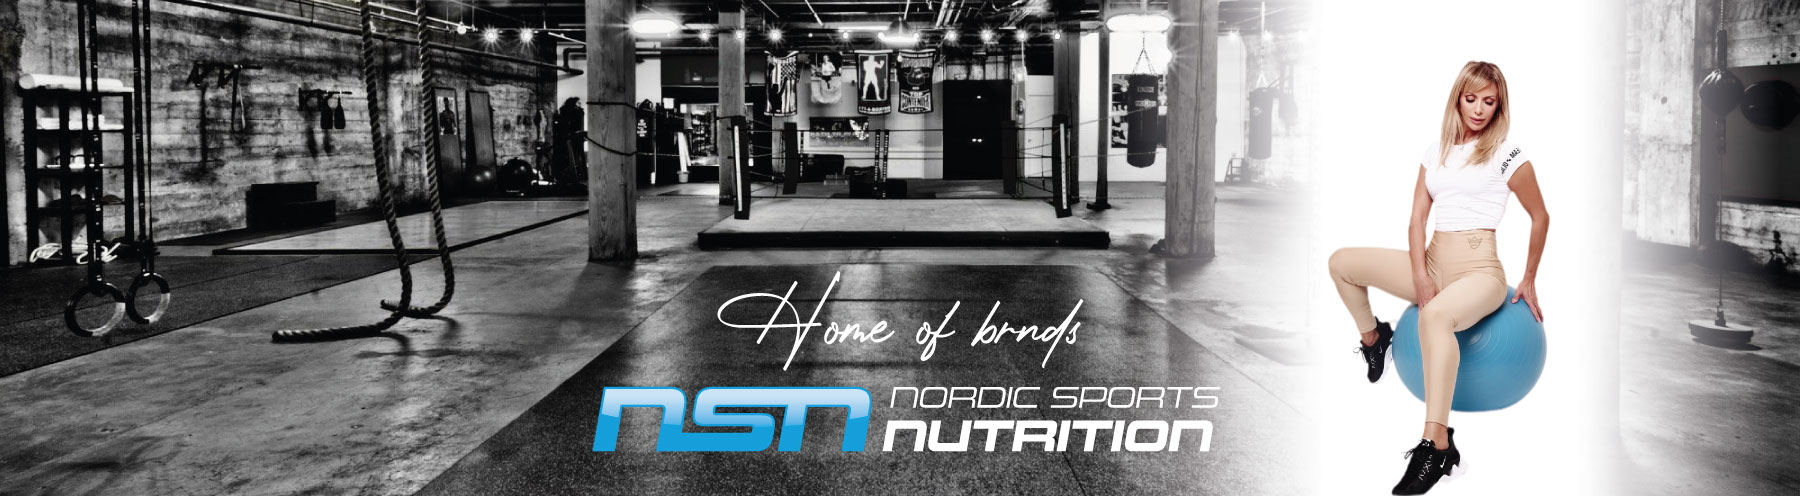 nordic sports nutrition